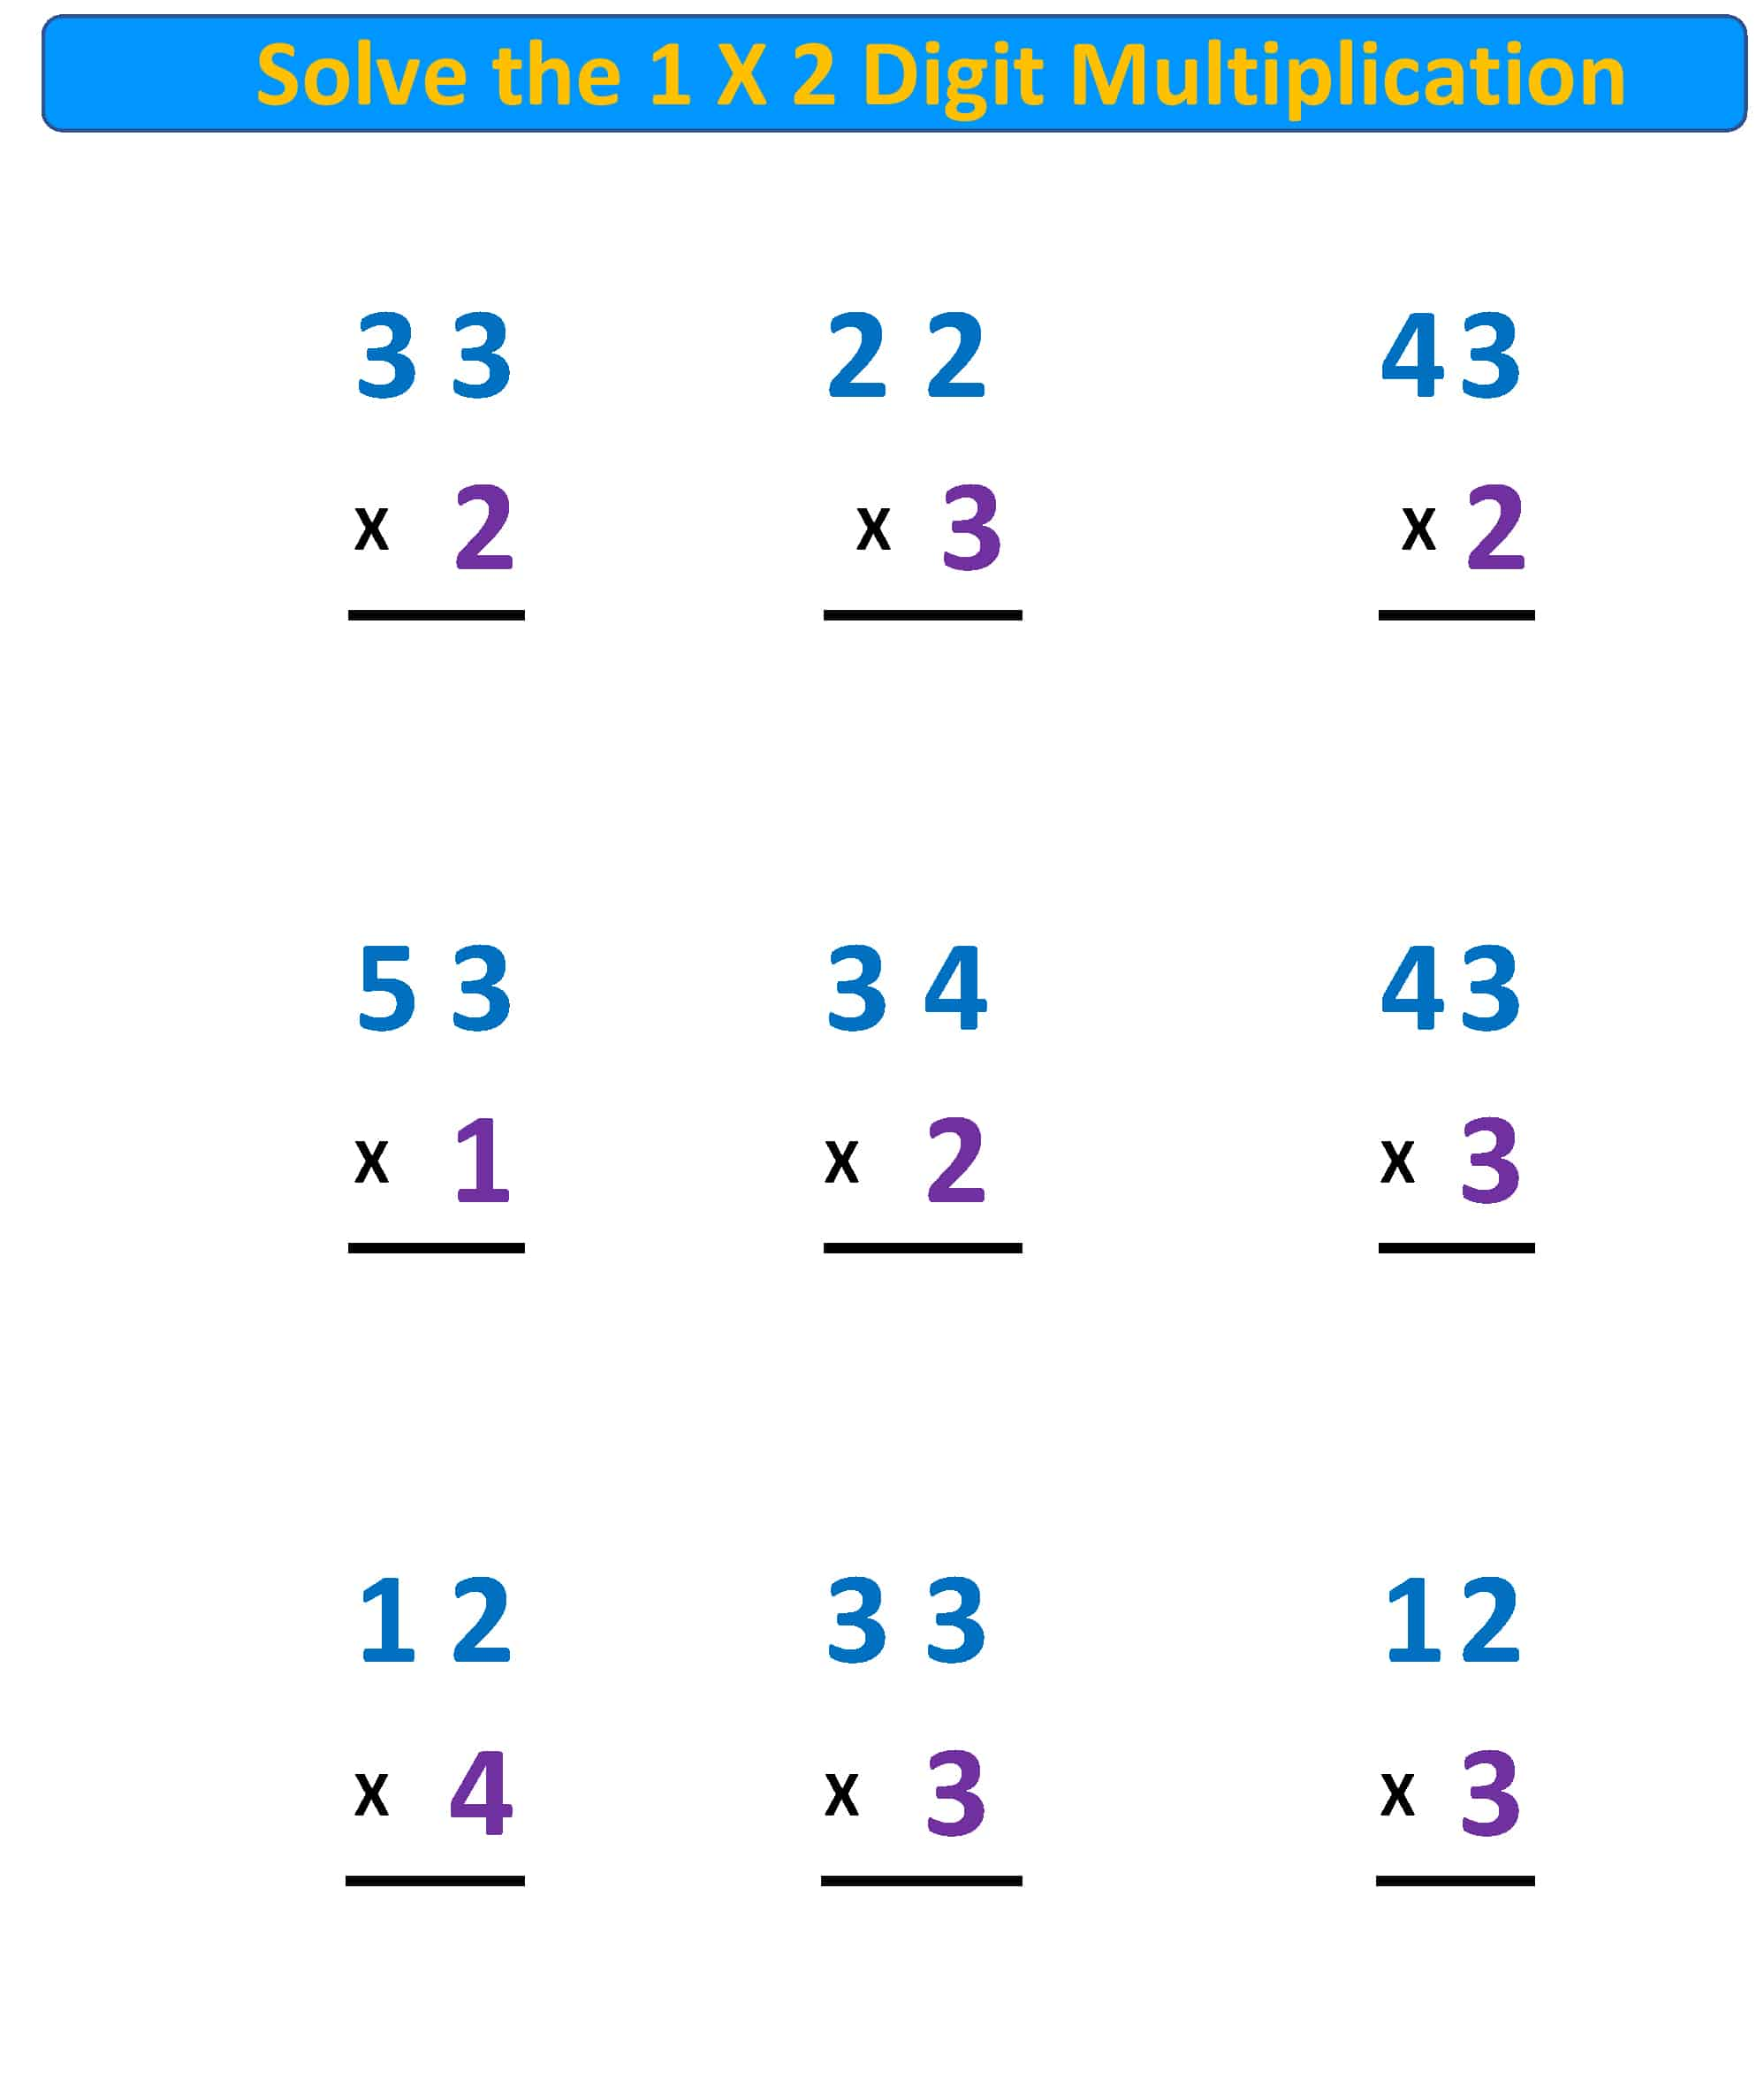 Multiplication Worksheet 1X2 Digits No Regrouping